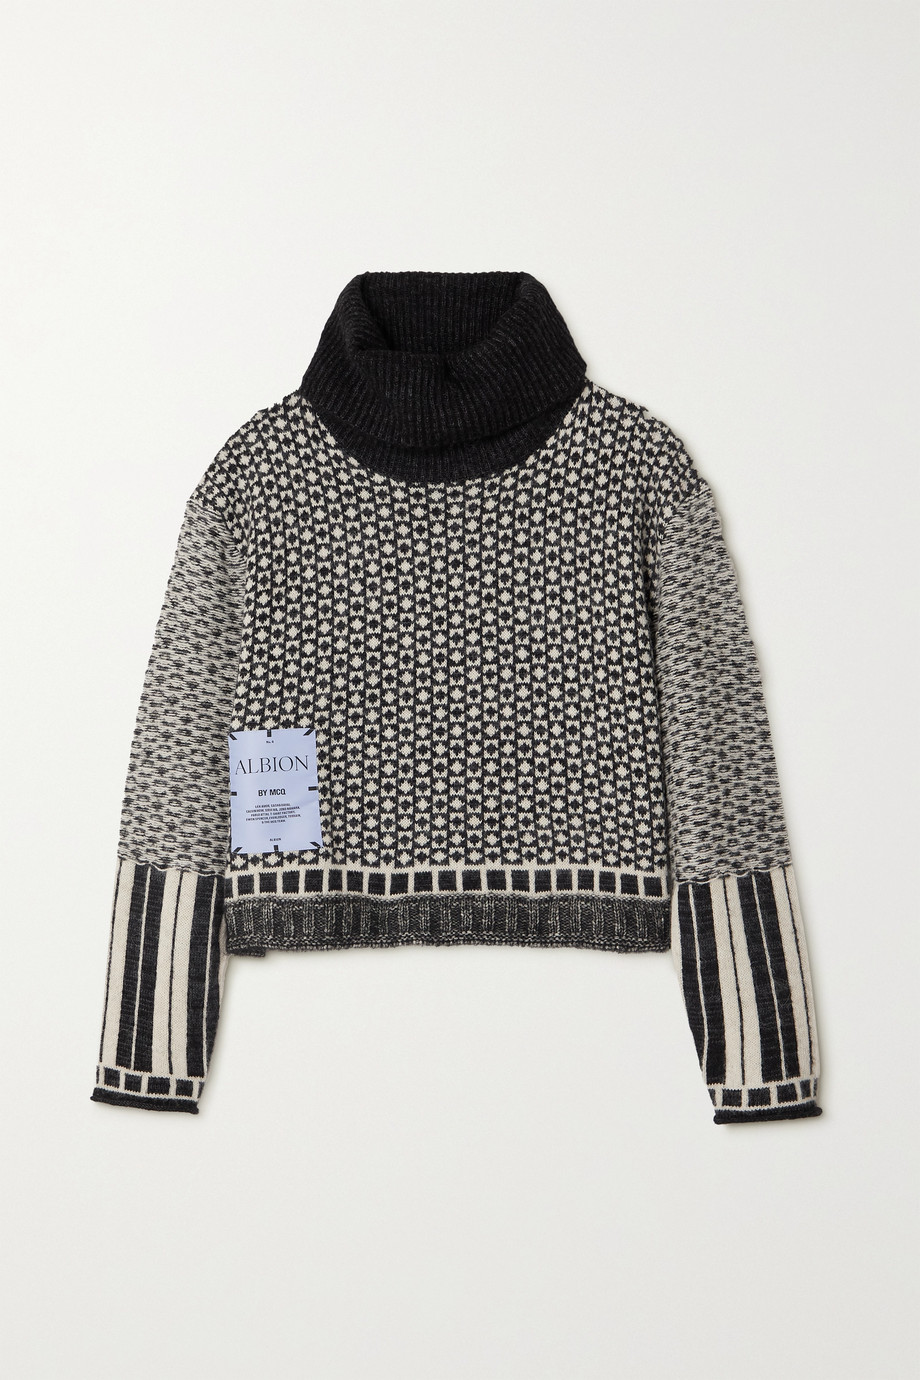 MCQ ALEXANDER MCQUEEN Appliquéd Fair Isle cropped knitted turtleneck sweater